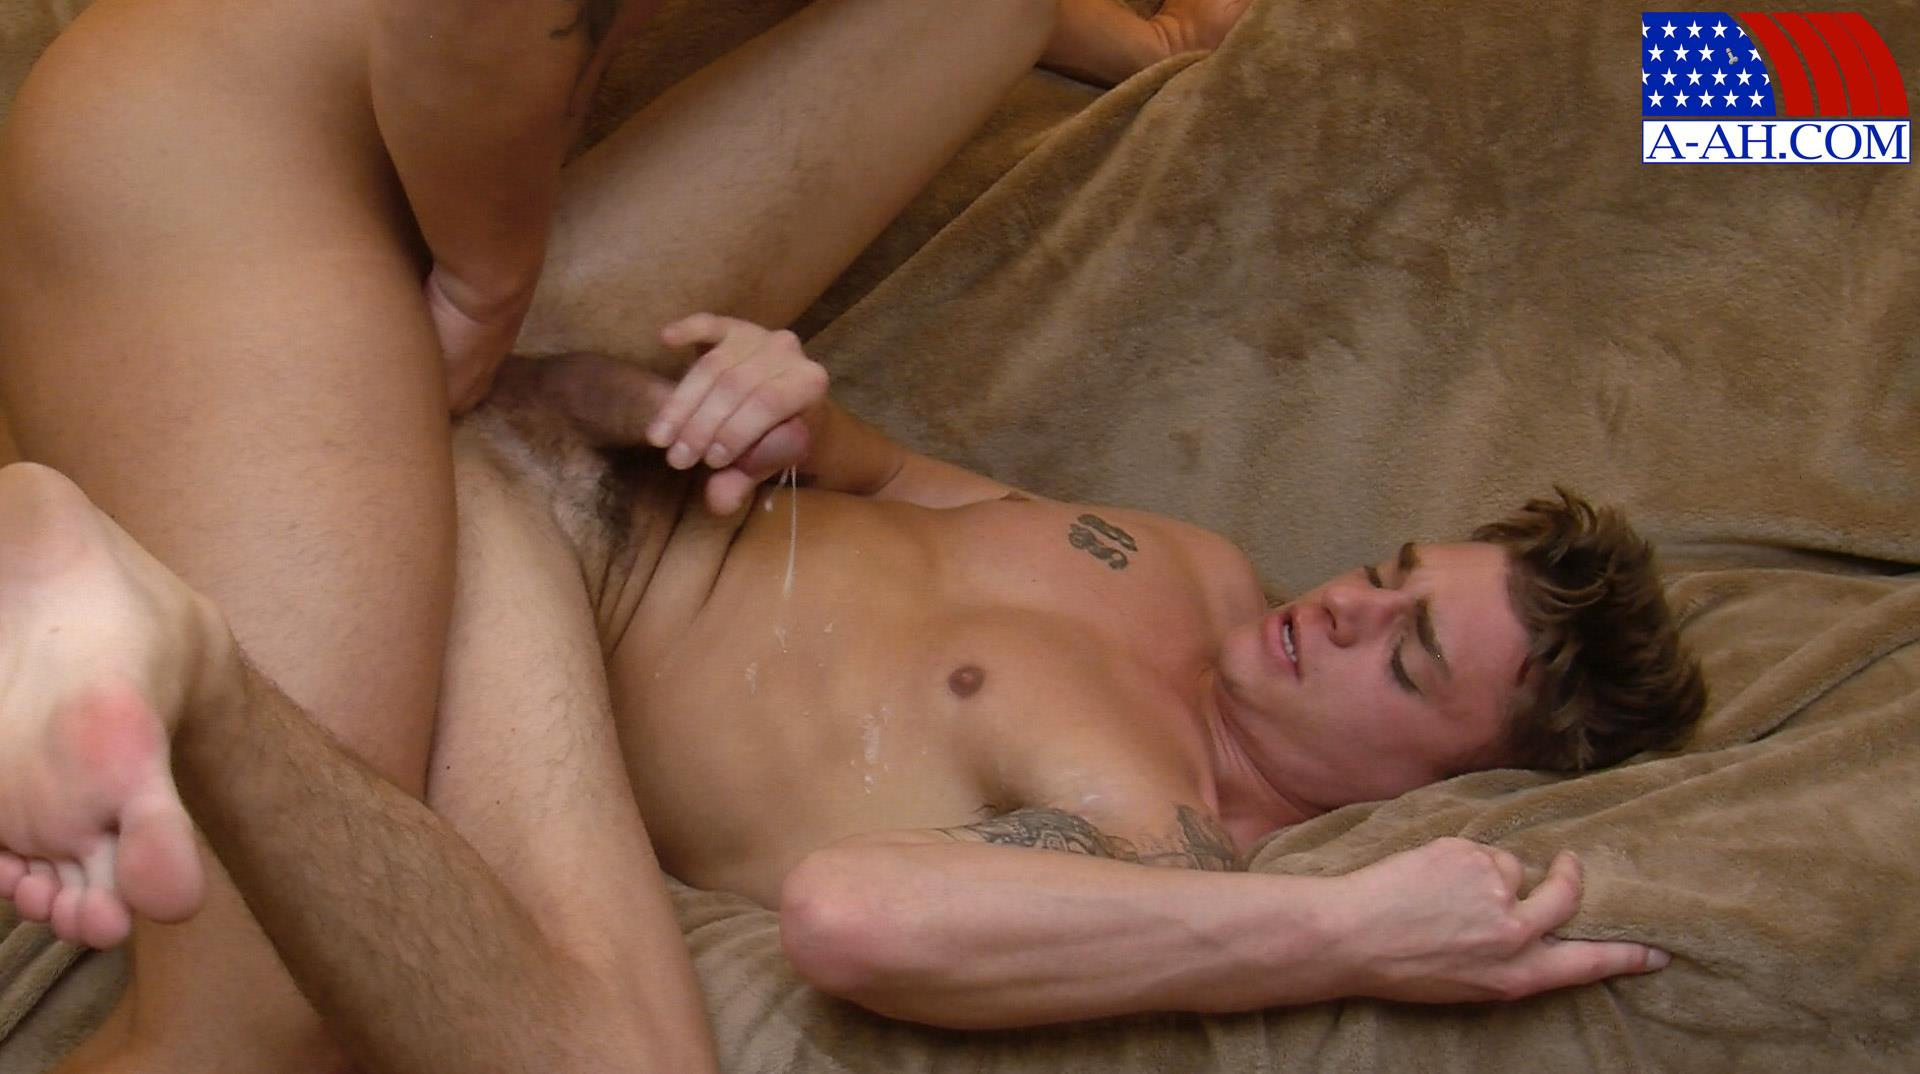 All-American-Heroes-Naked-Navy-Guy-Barebacking-a-Muscle-Twink-Amateur-Gay-Porn-14 Muscular Navy Corpsman Barebacking His Younger Workout Partner